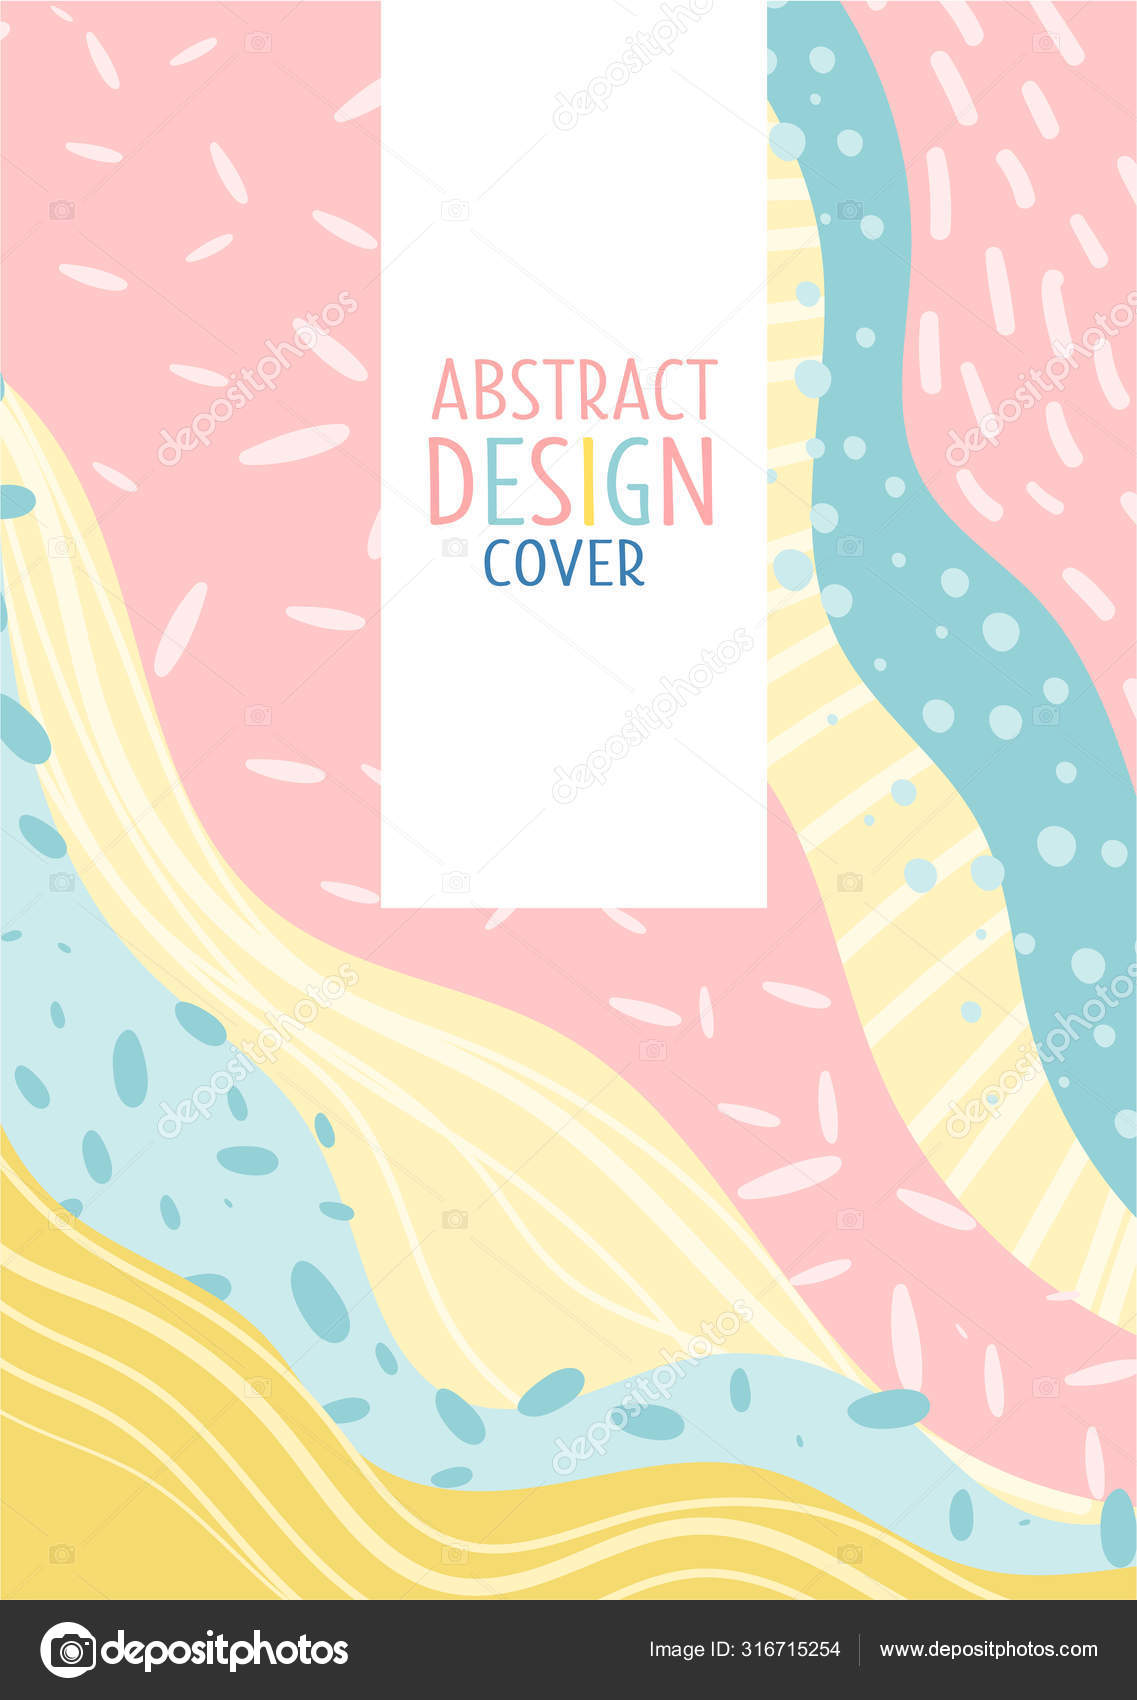 Cute Pastel Design In Pink Yellow And Turquoise Colors Vector Illustration Stock Vector C Happypictures 316715254